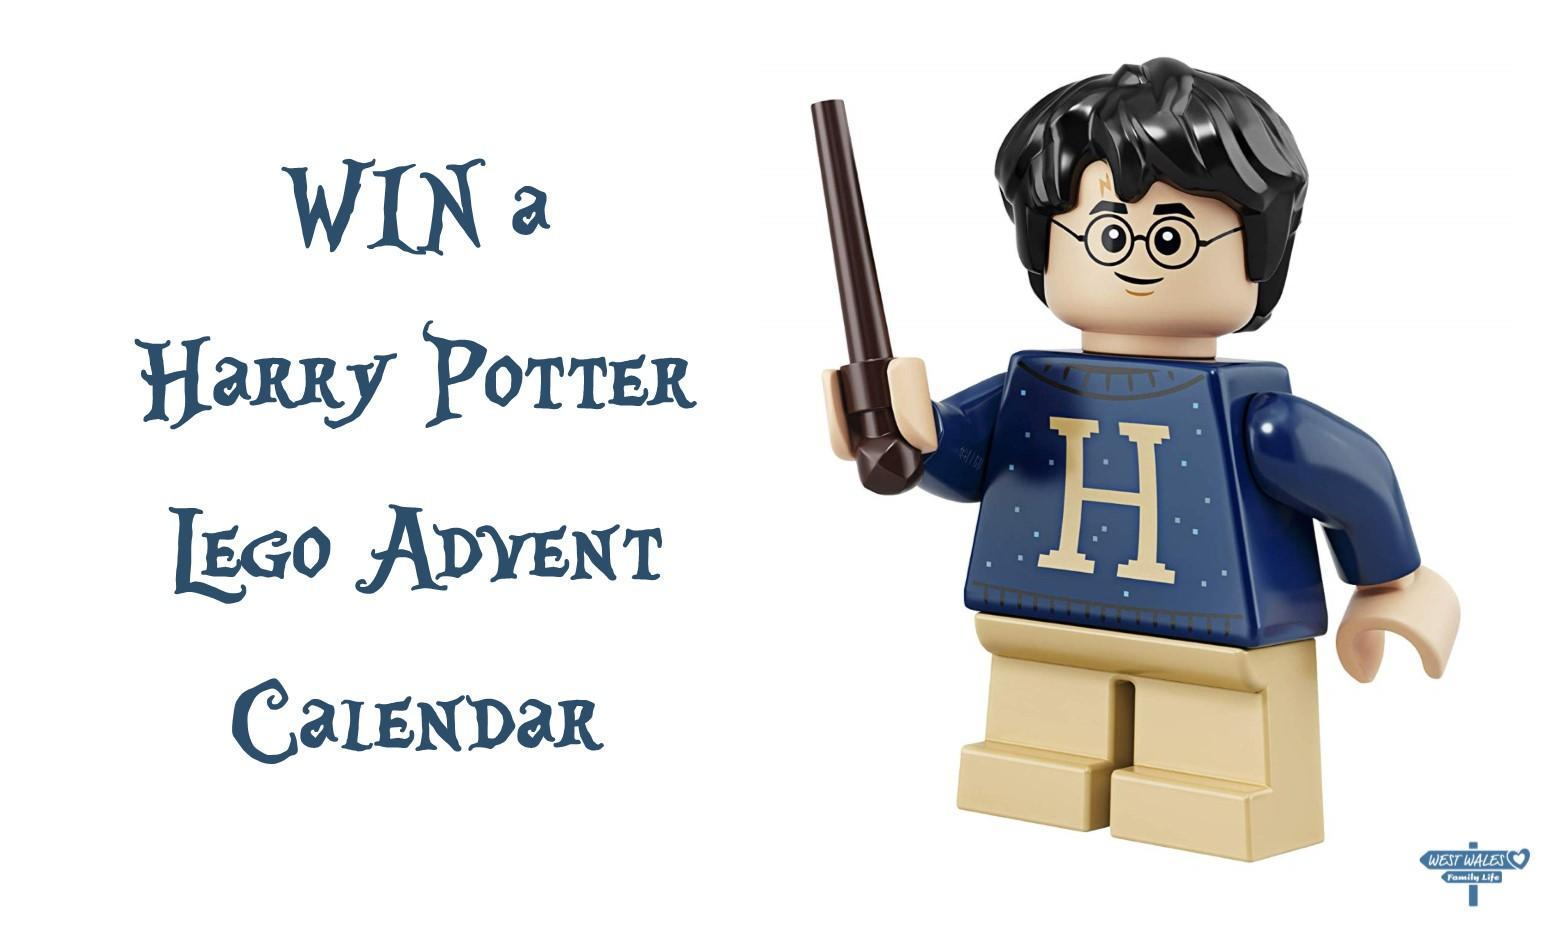 WIN a Harry Potter Lego Advent Calendar